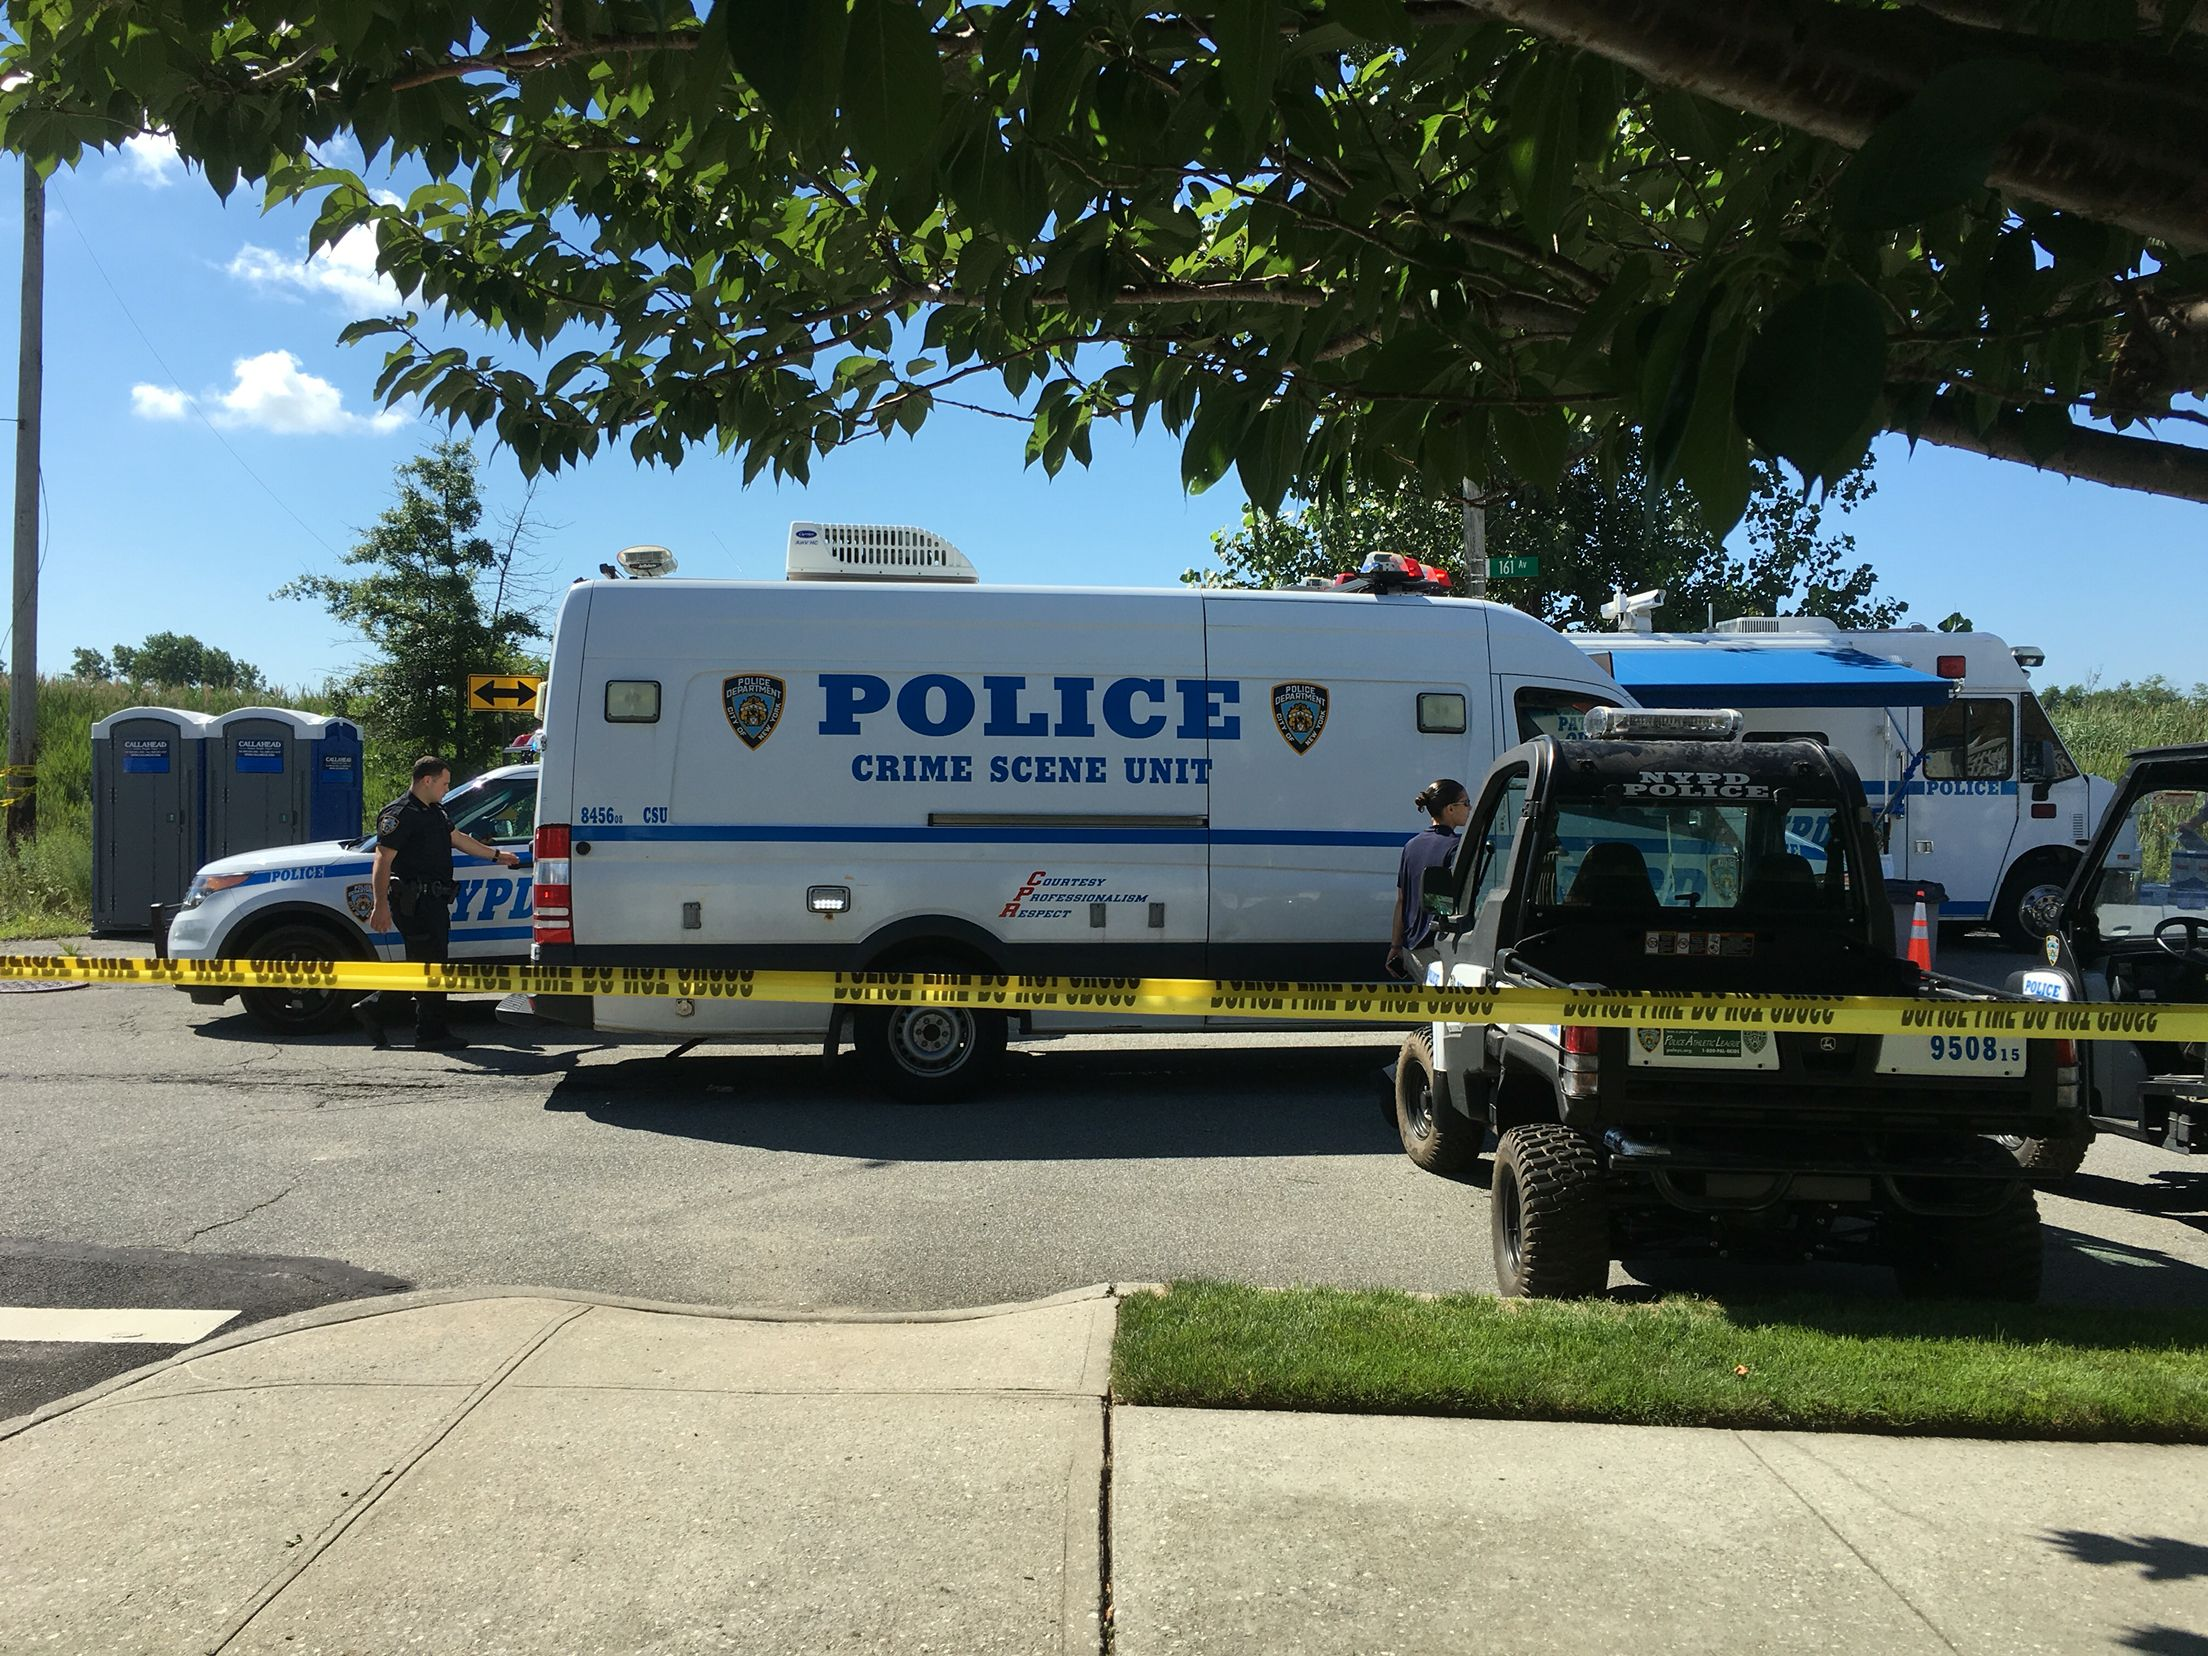 NYPD Crime Scene truck at an active crime scene in #HowardBeach #NYC